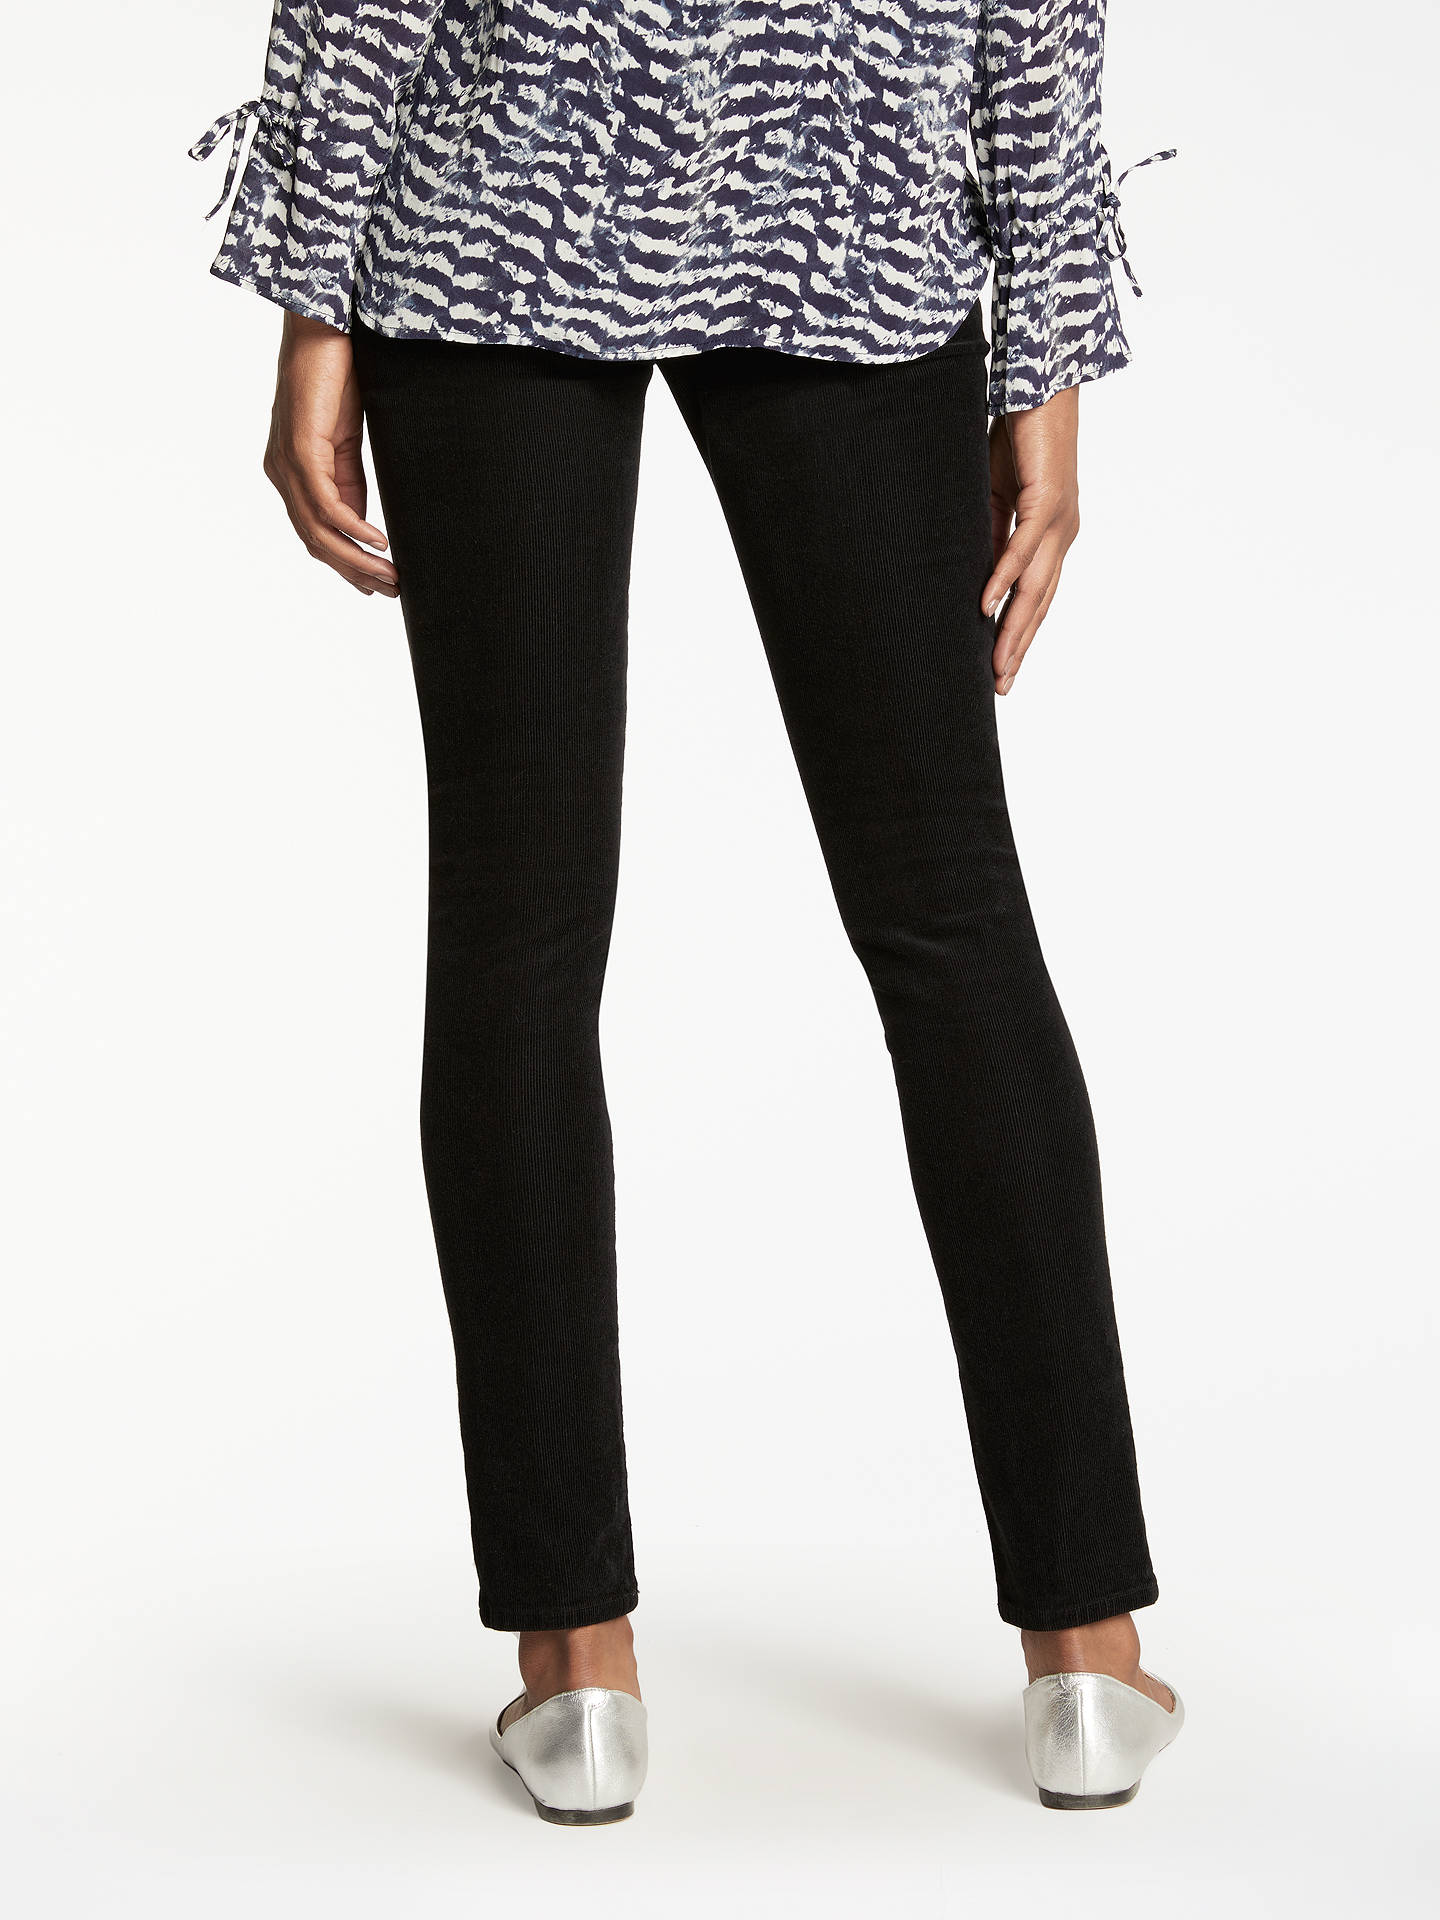 BuyJ Brand 811 Mid Rise Skinny Corduroy Jeans, Black, 24 Online at johnlewis.com